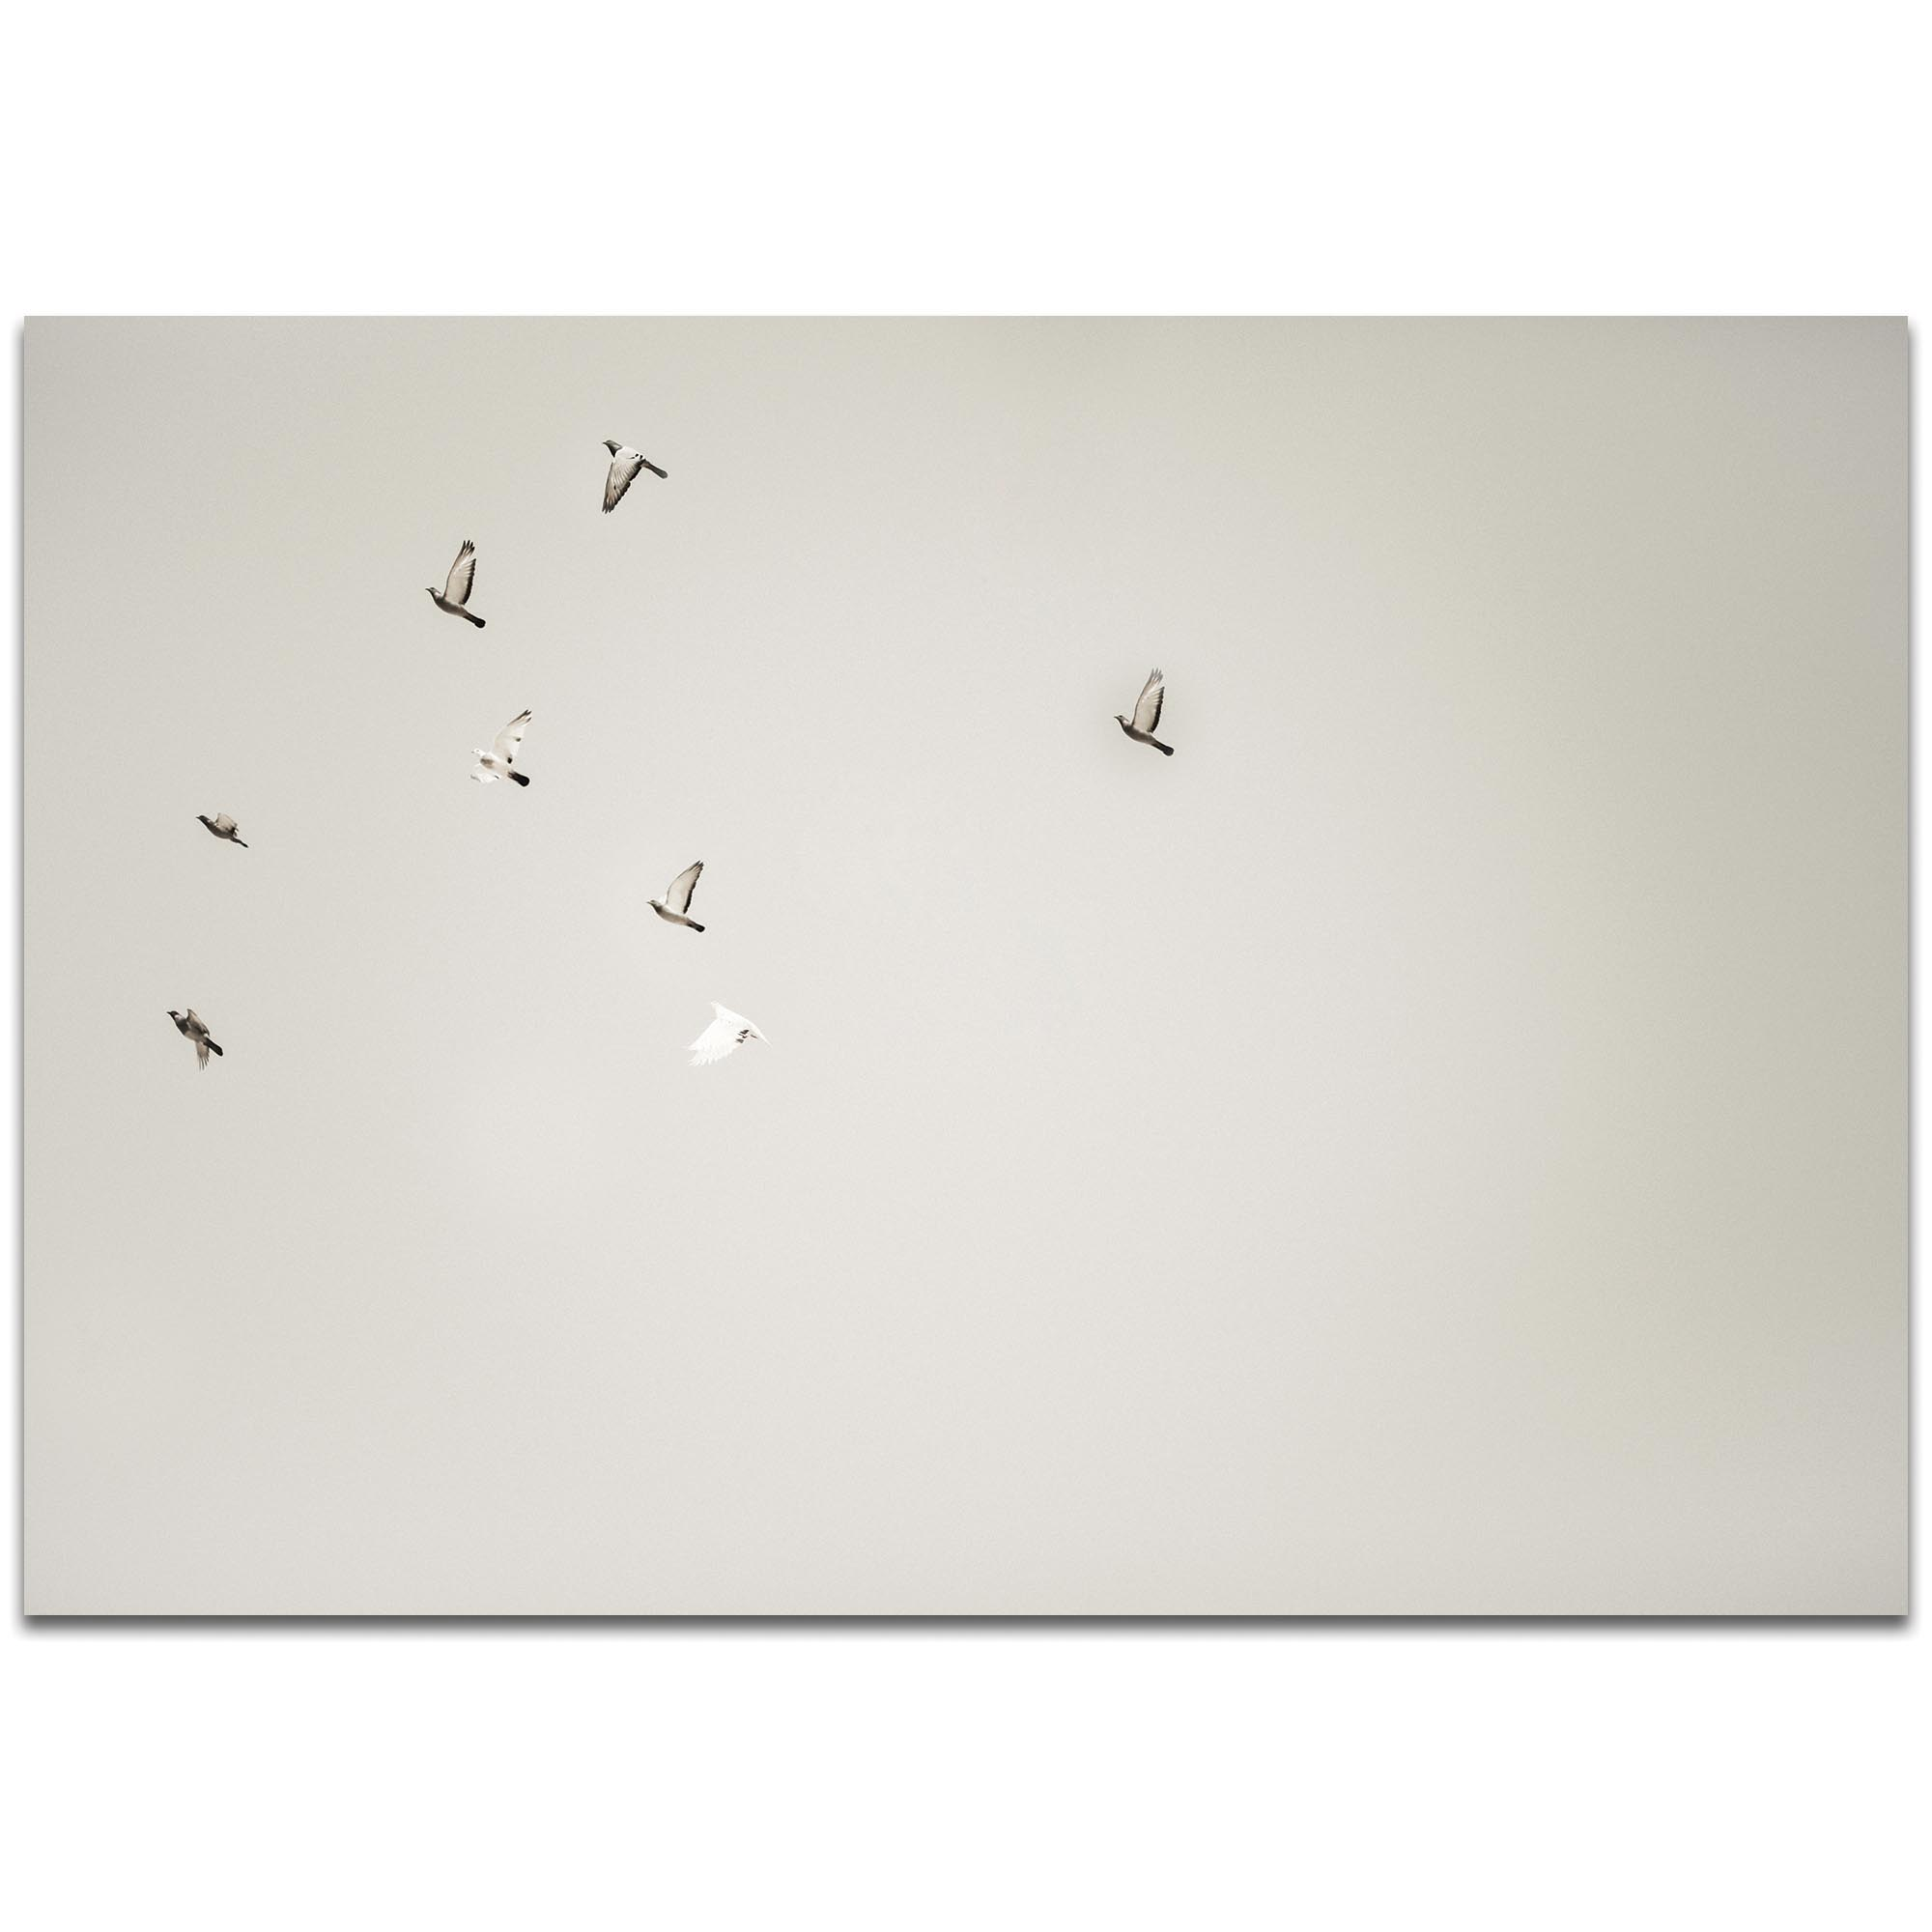 Minimalist Wall Art 'The Journey' - Wildlife Decor on Metal or Plexiglass